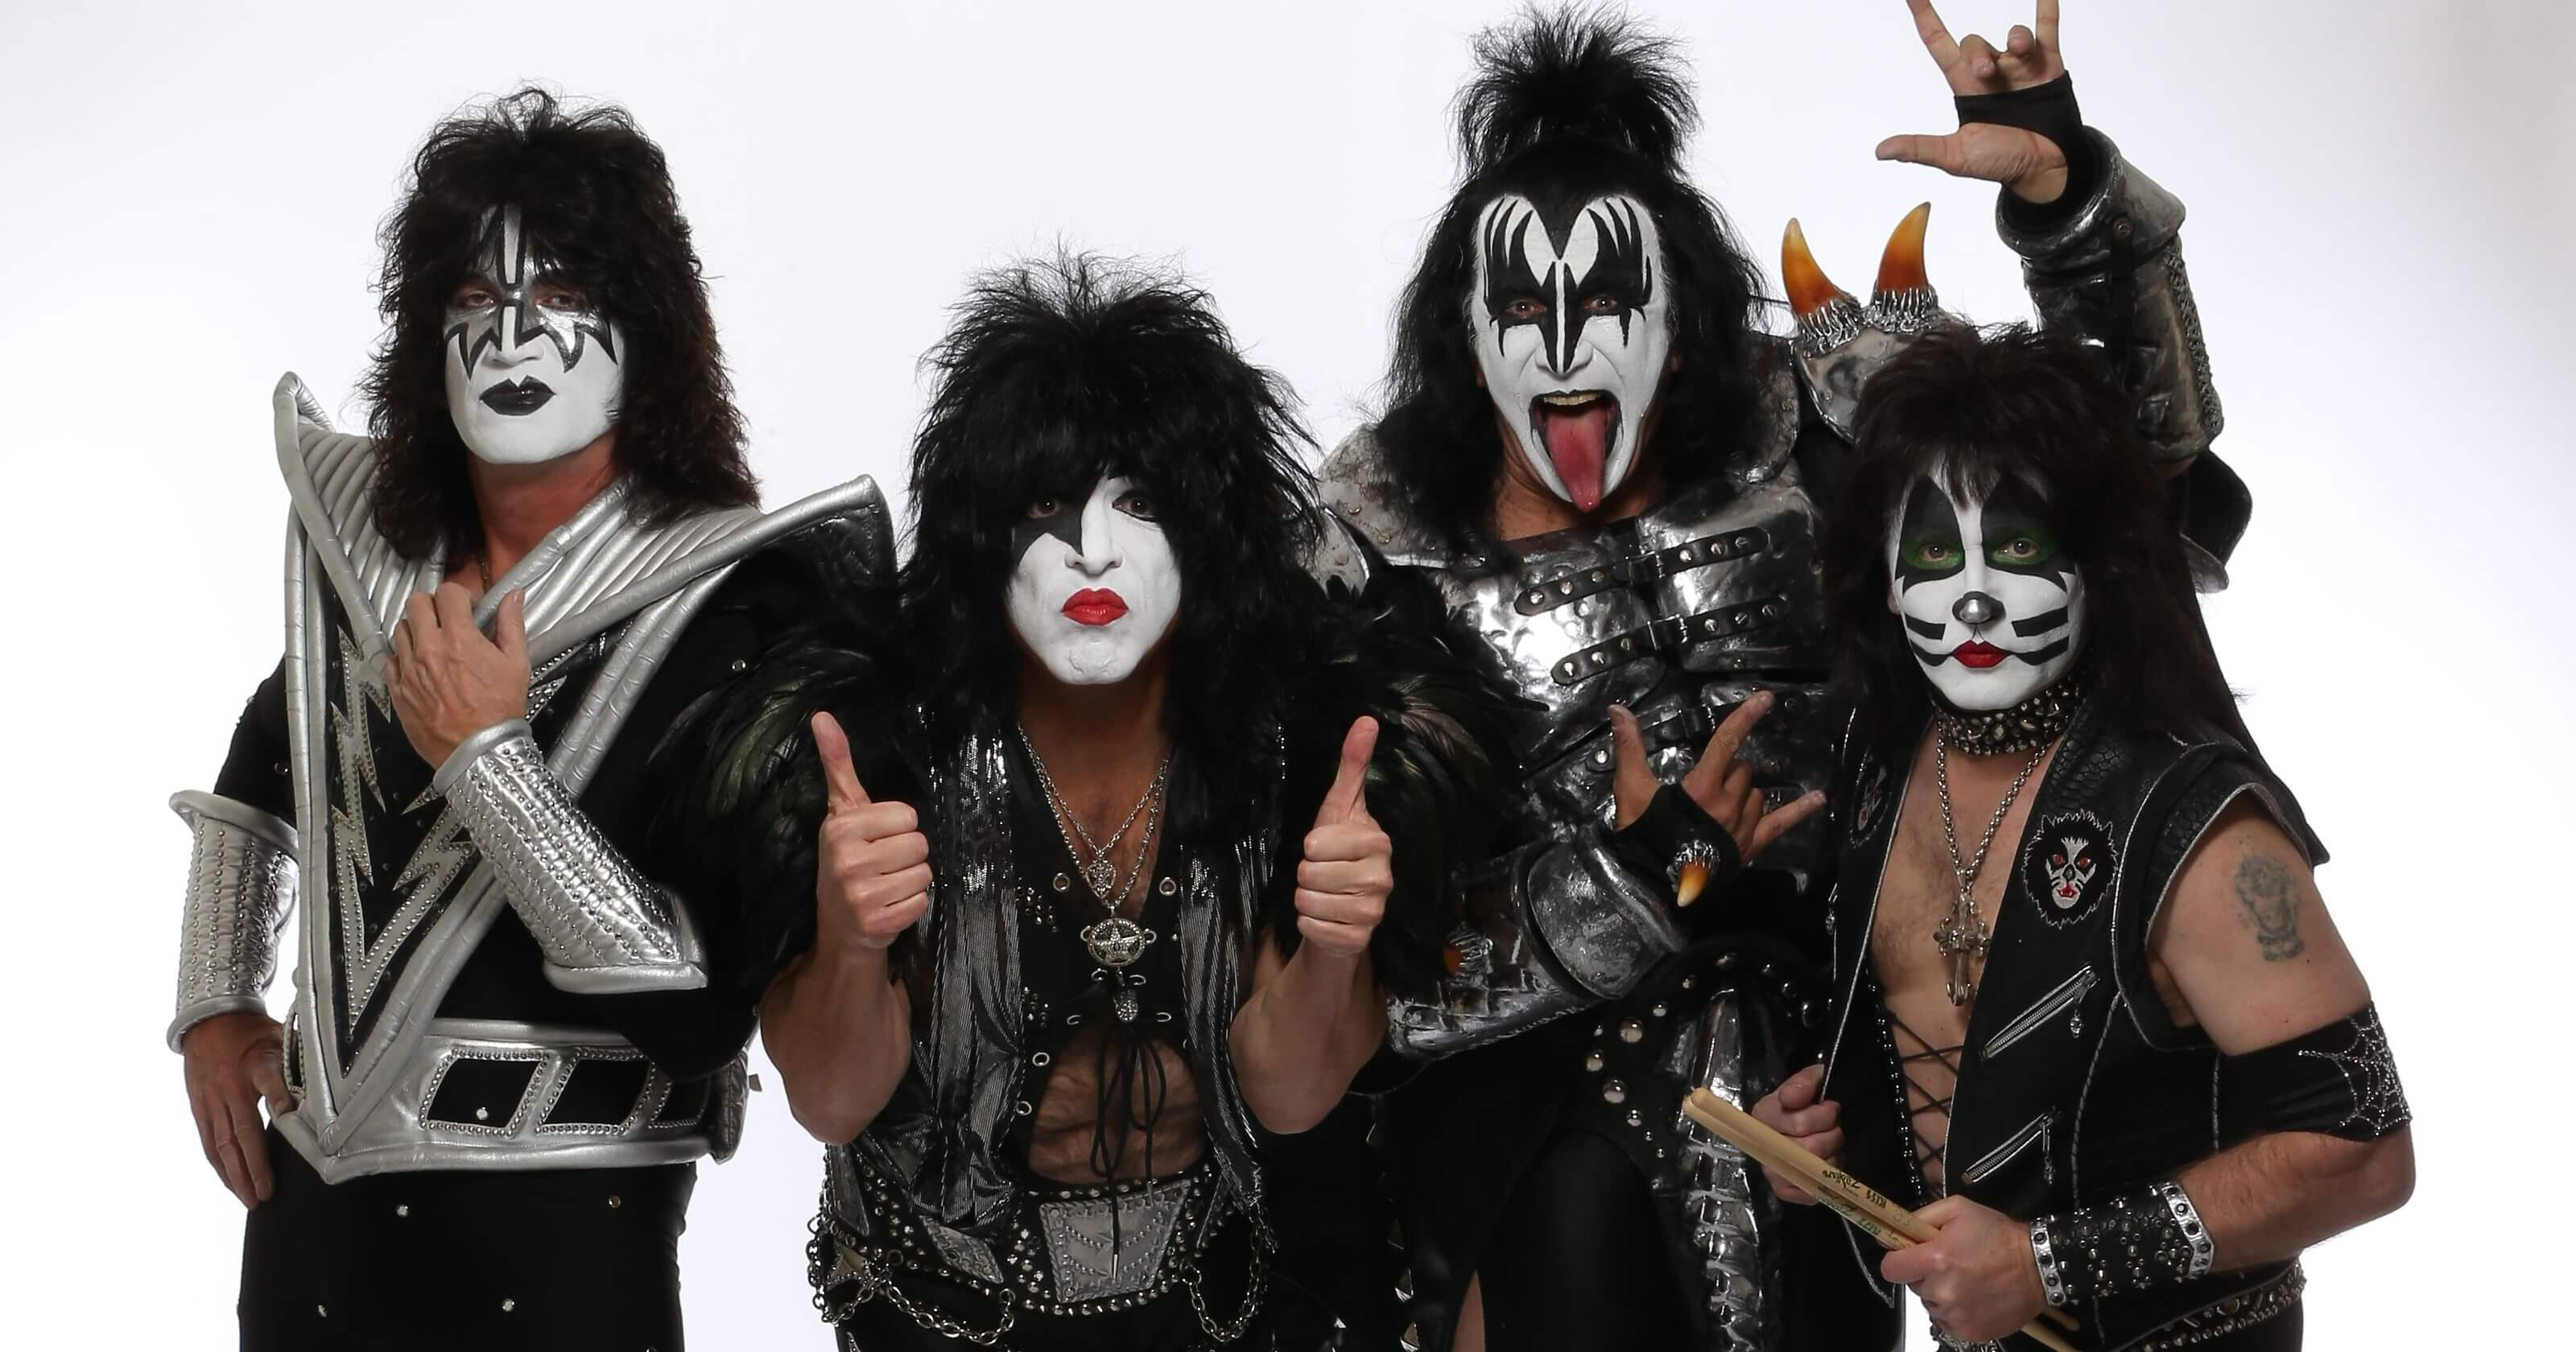 KISS   AMERICA S  1 GOLD RECORD AWARD WINNING GROUP OF ALL TIME     1396298223000 KISS KISS BAND JY 0718 62187918 1